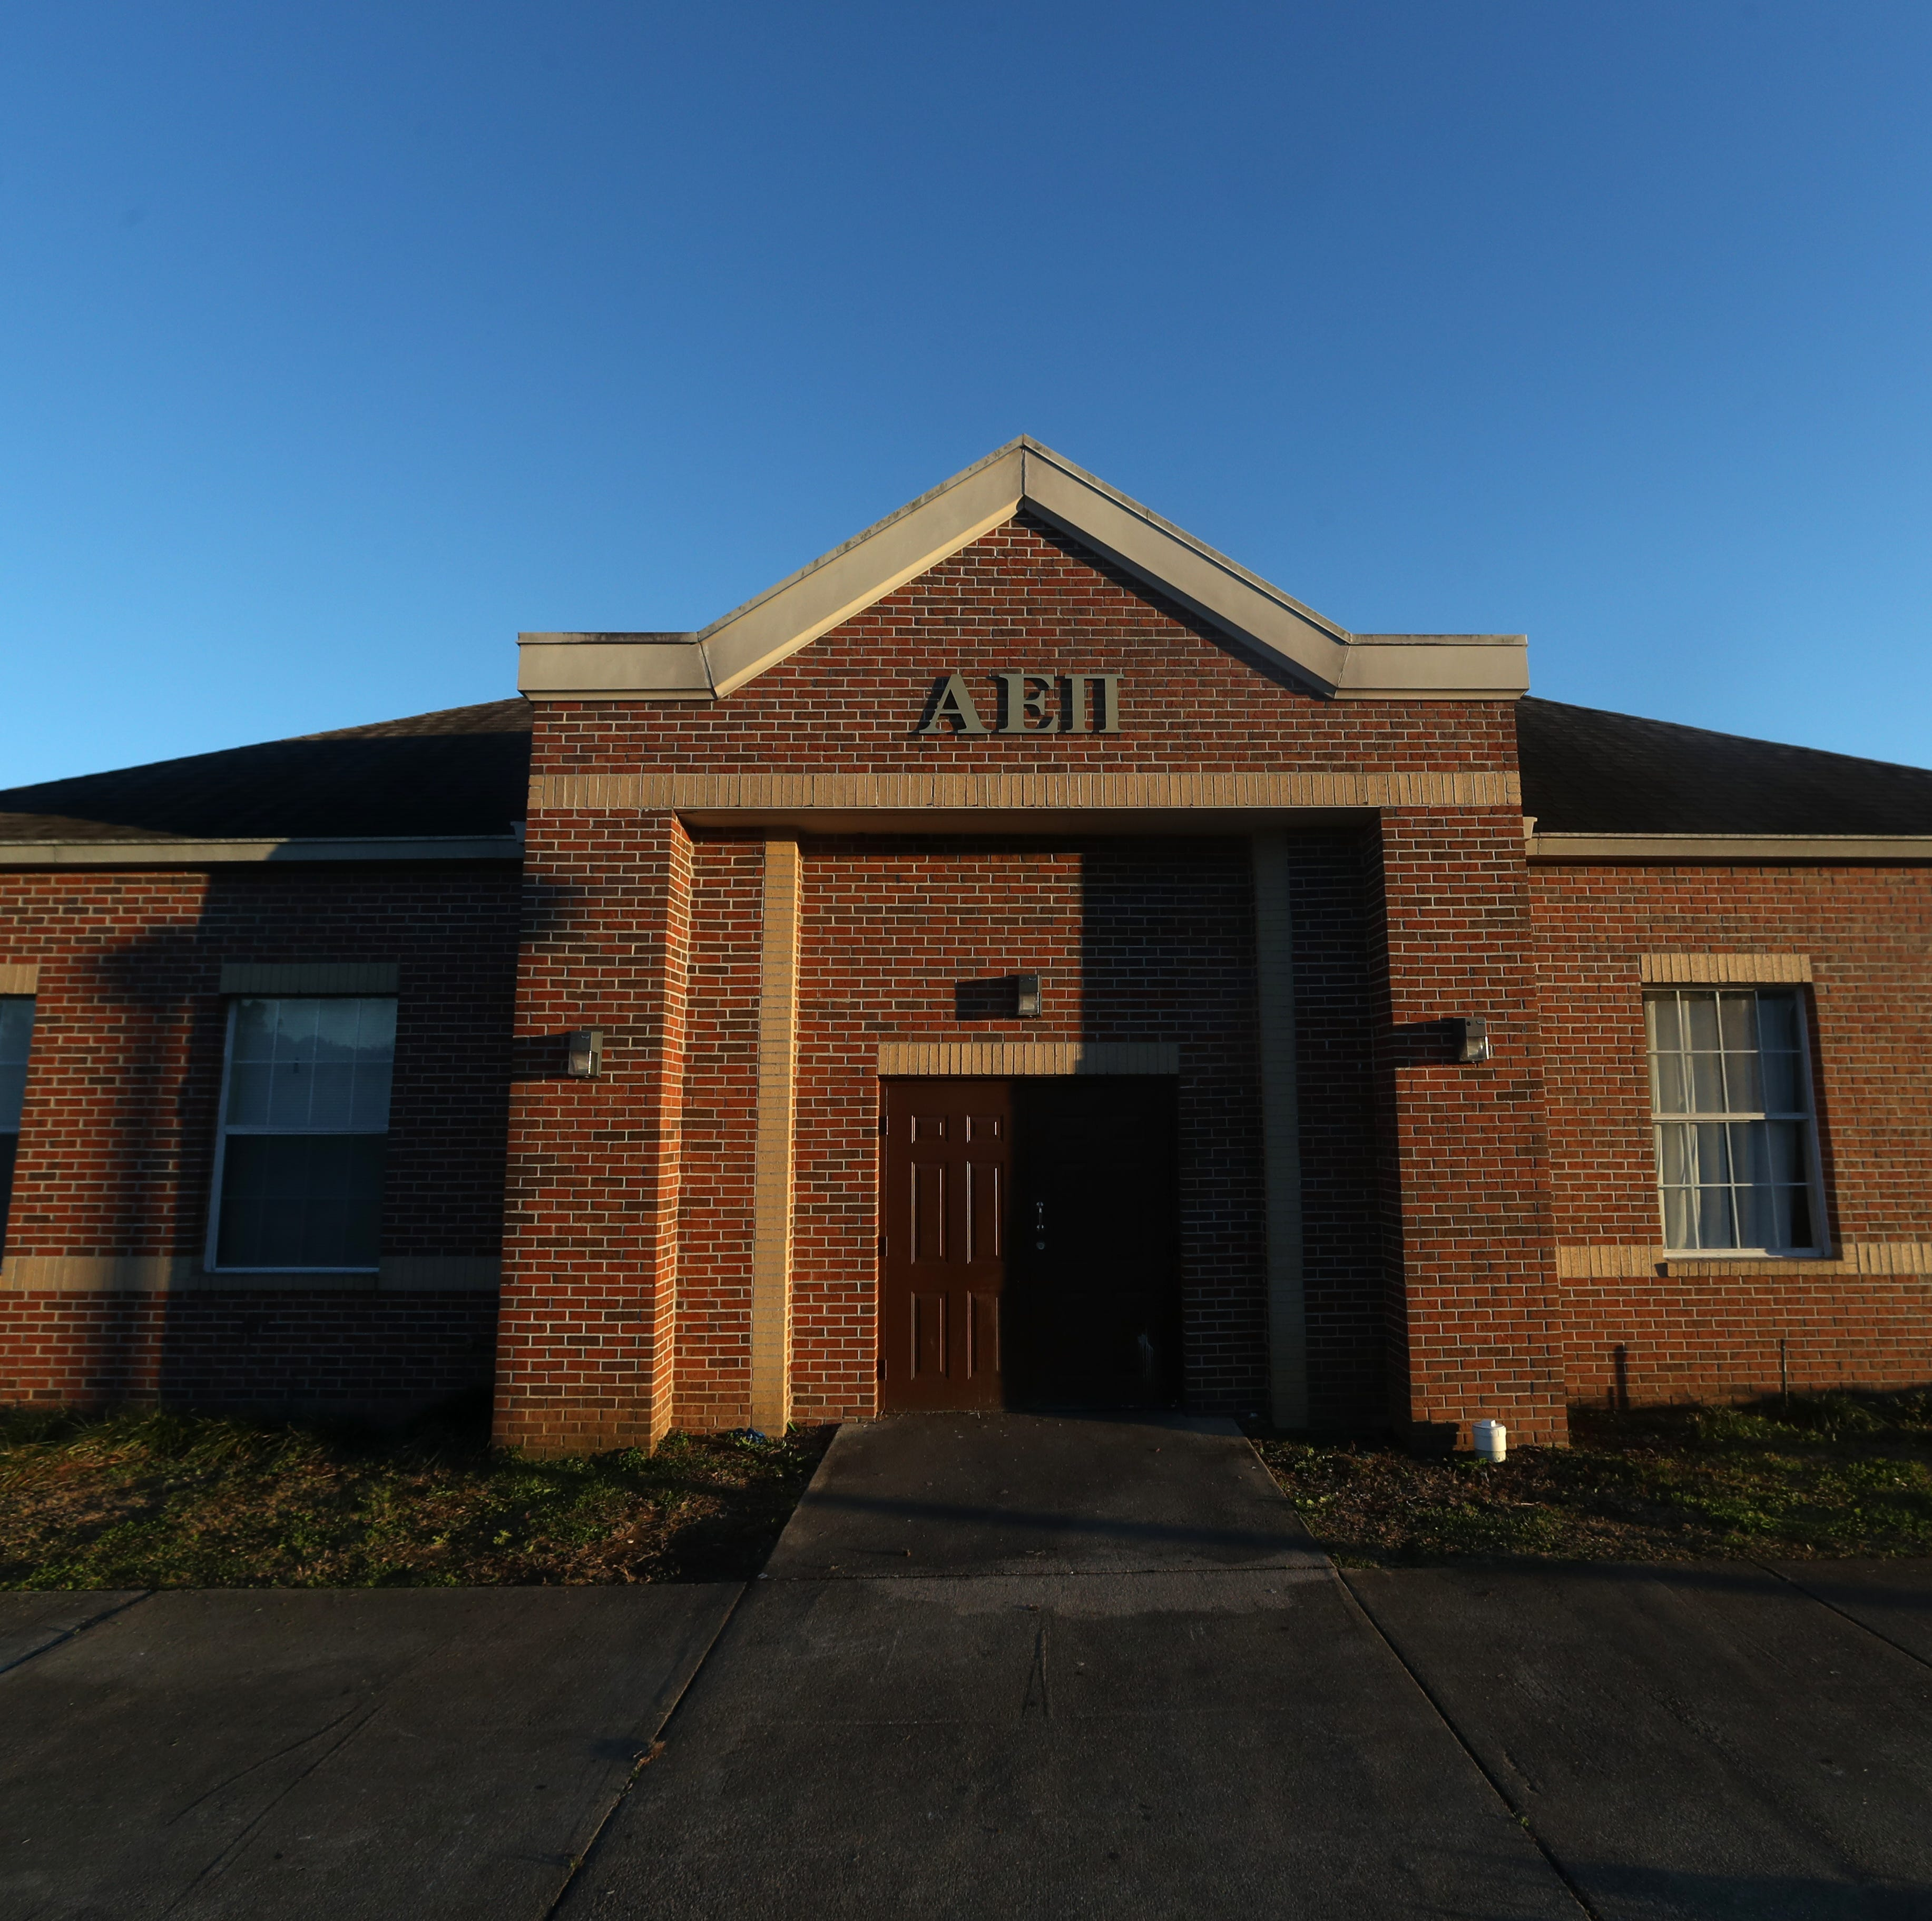 AEPi faces lawsuit after student suffers brain injuries during fraternity ritual